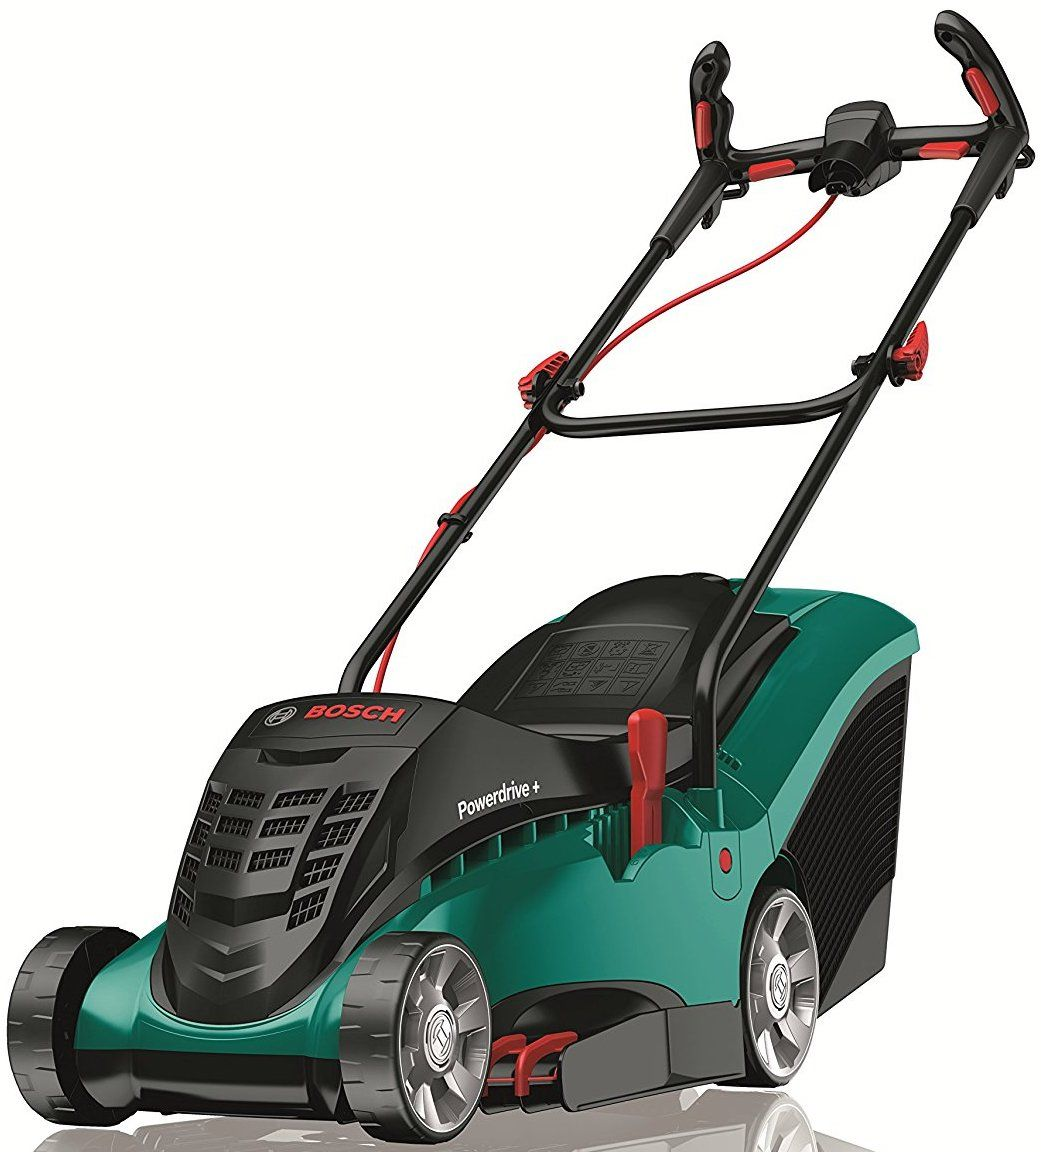 Electric Lawn Mowing Is The Best Element For Our Home So That Is Important For Every Human The Days Of Gas Lawn Mowers Lawn Mower Cordless Lawn Mower Rotary Lawn Mower